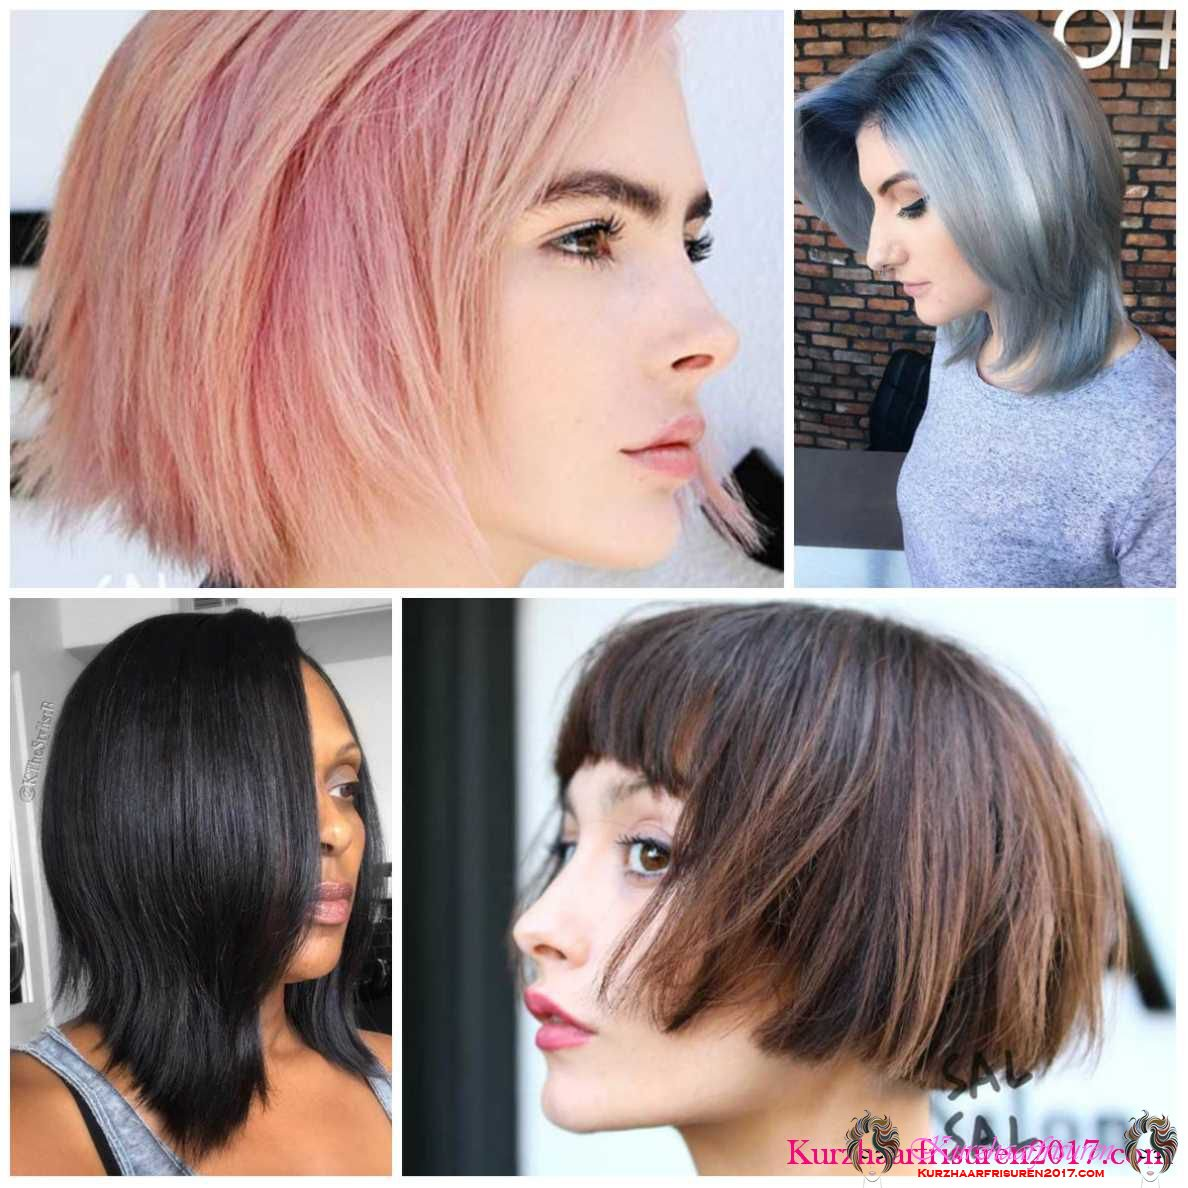 kurzhaarfrisuren 2018 haarfarben trends